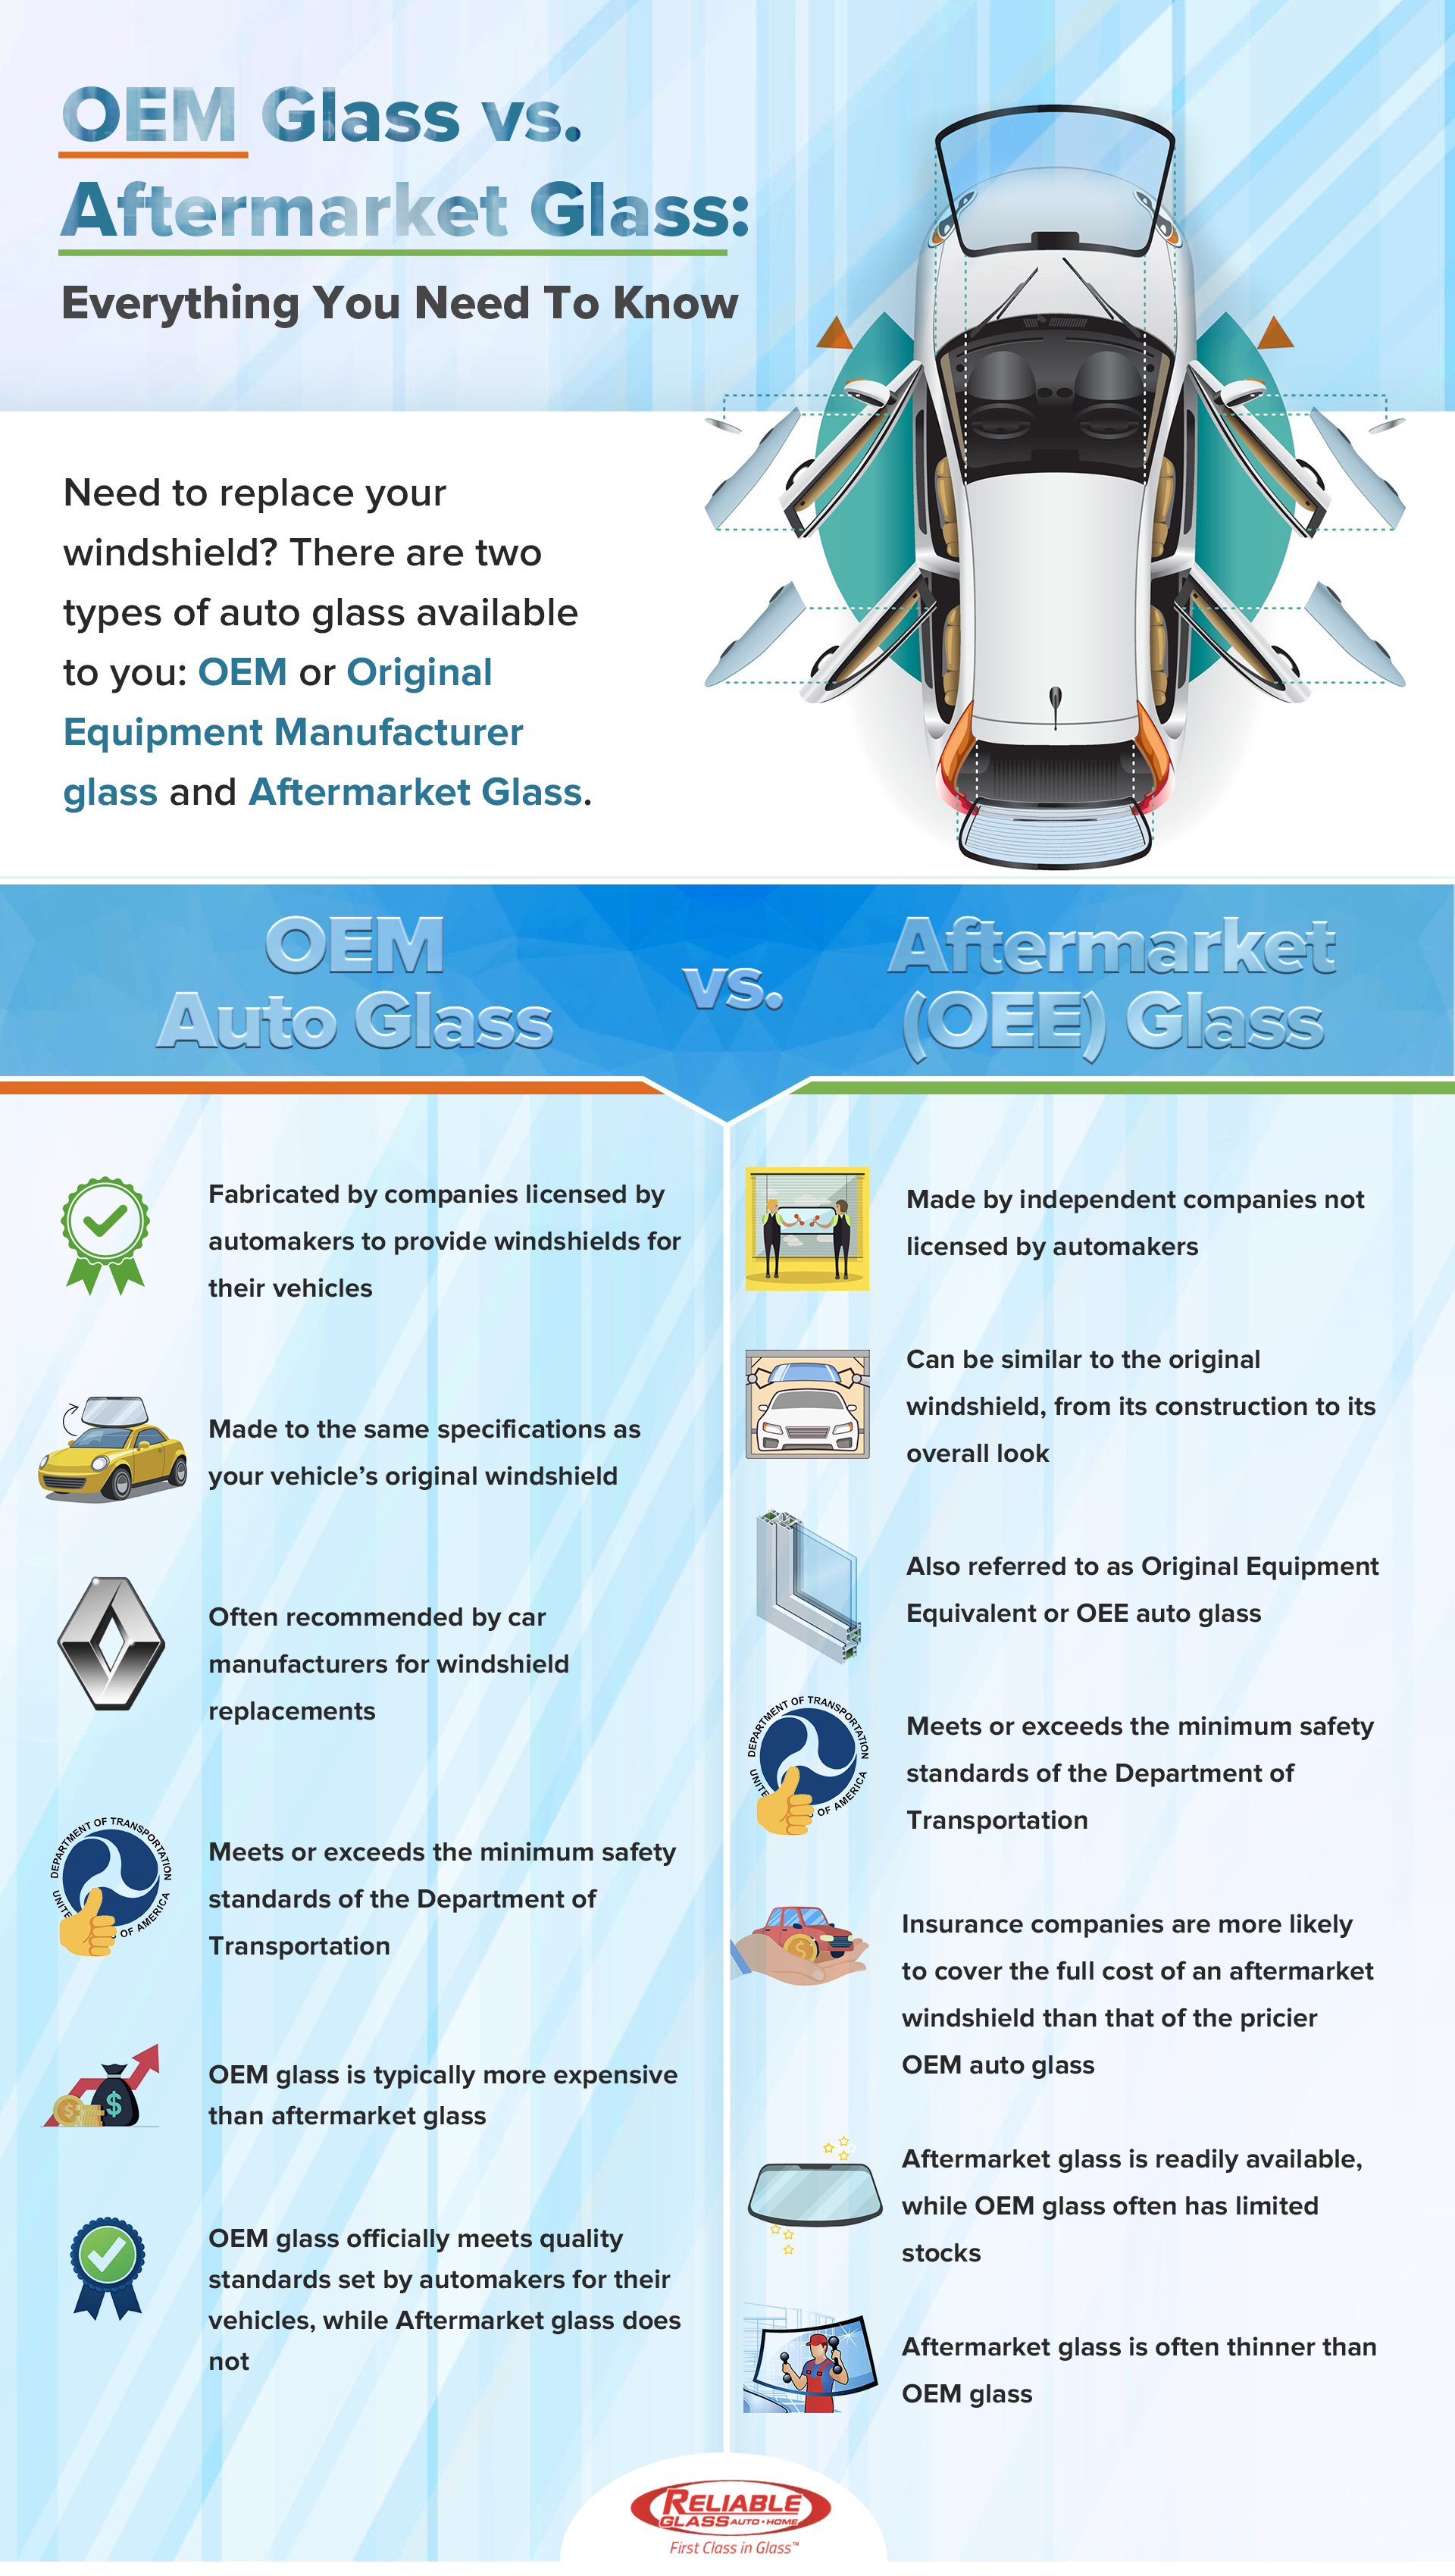 OEM Glass vs Aftermarket Glass - Infographic